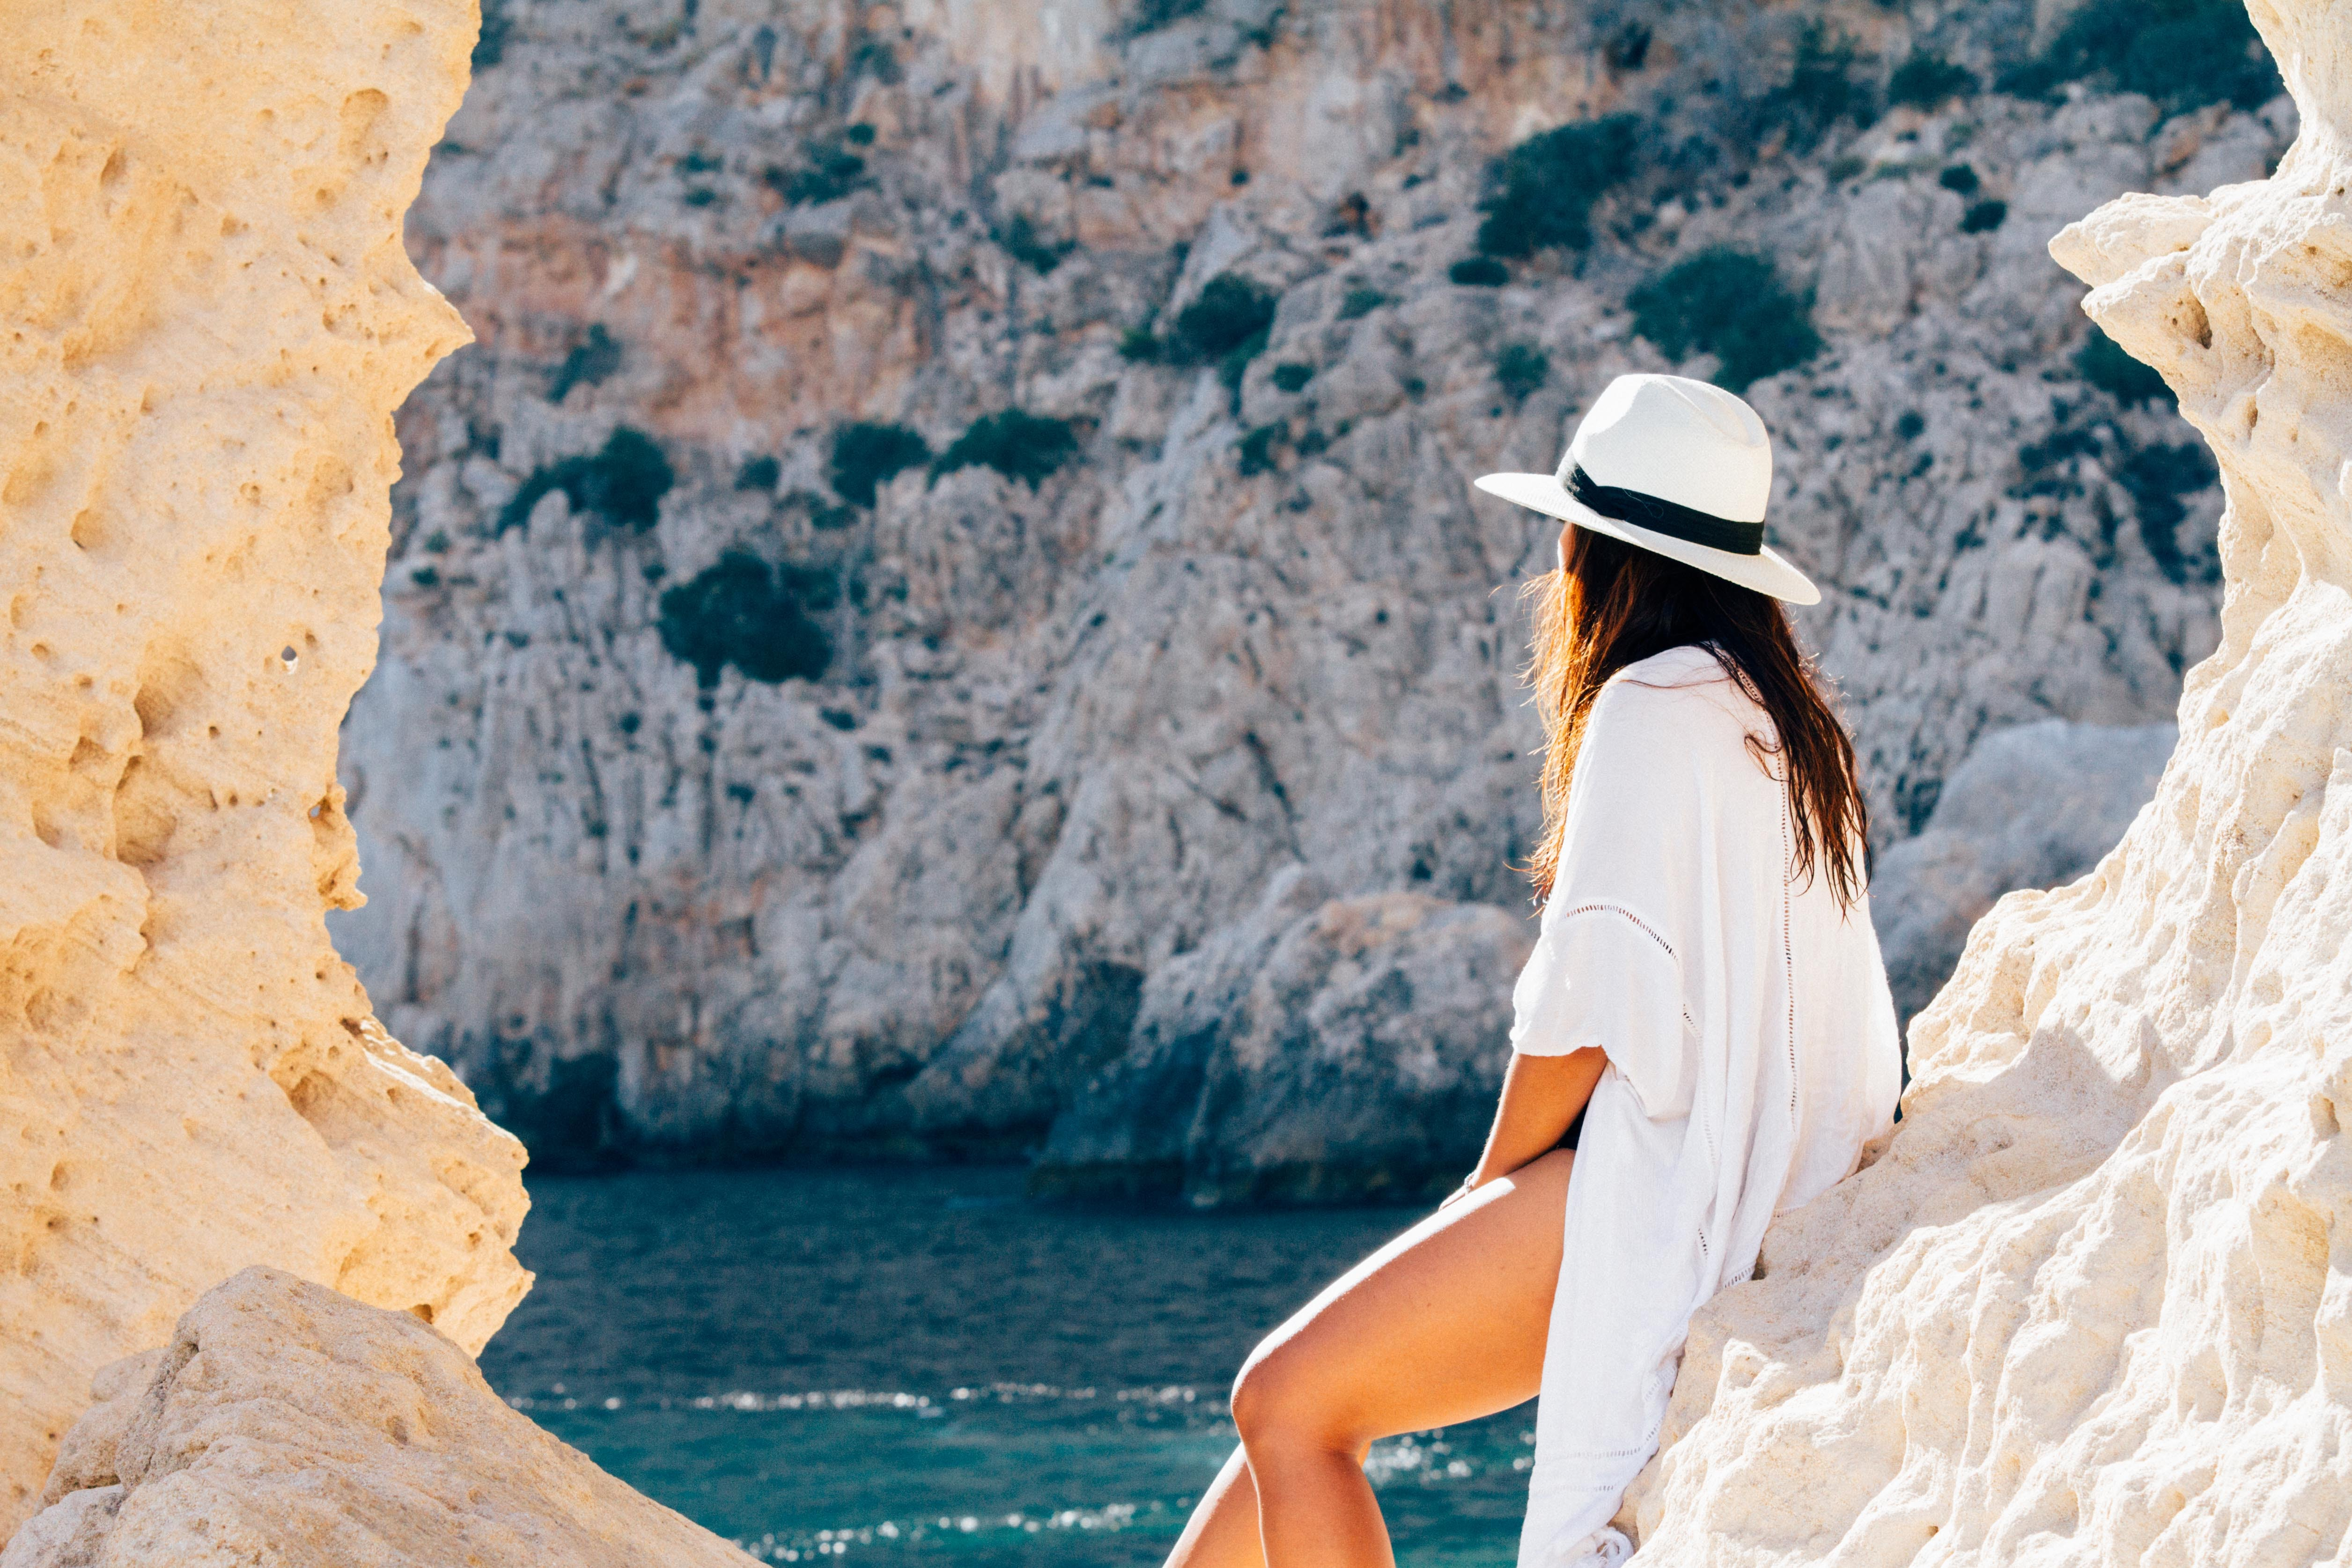 Why your skin needs summer vacation! Improve summer skin with skin care tips and skin recovery from conditions like acne, eczema and more for more beautiful skin